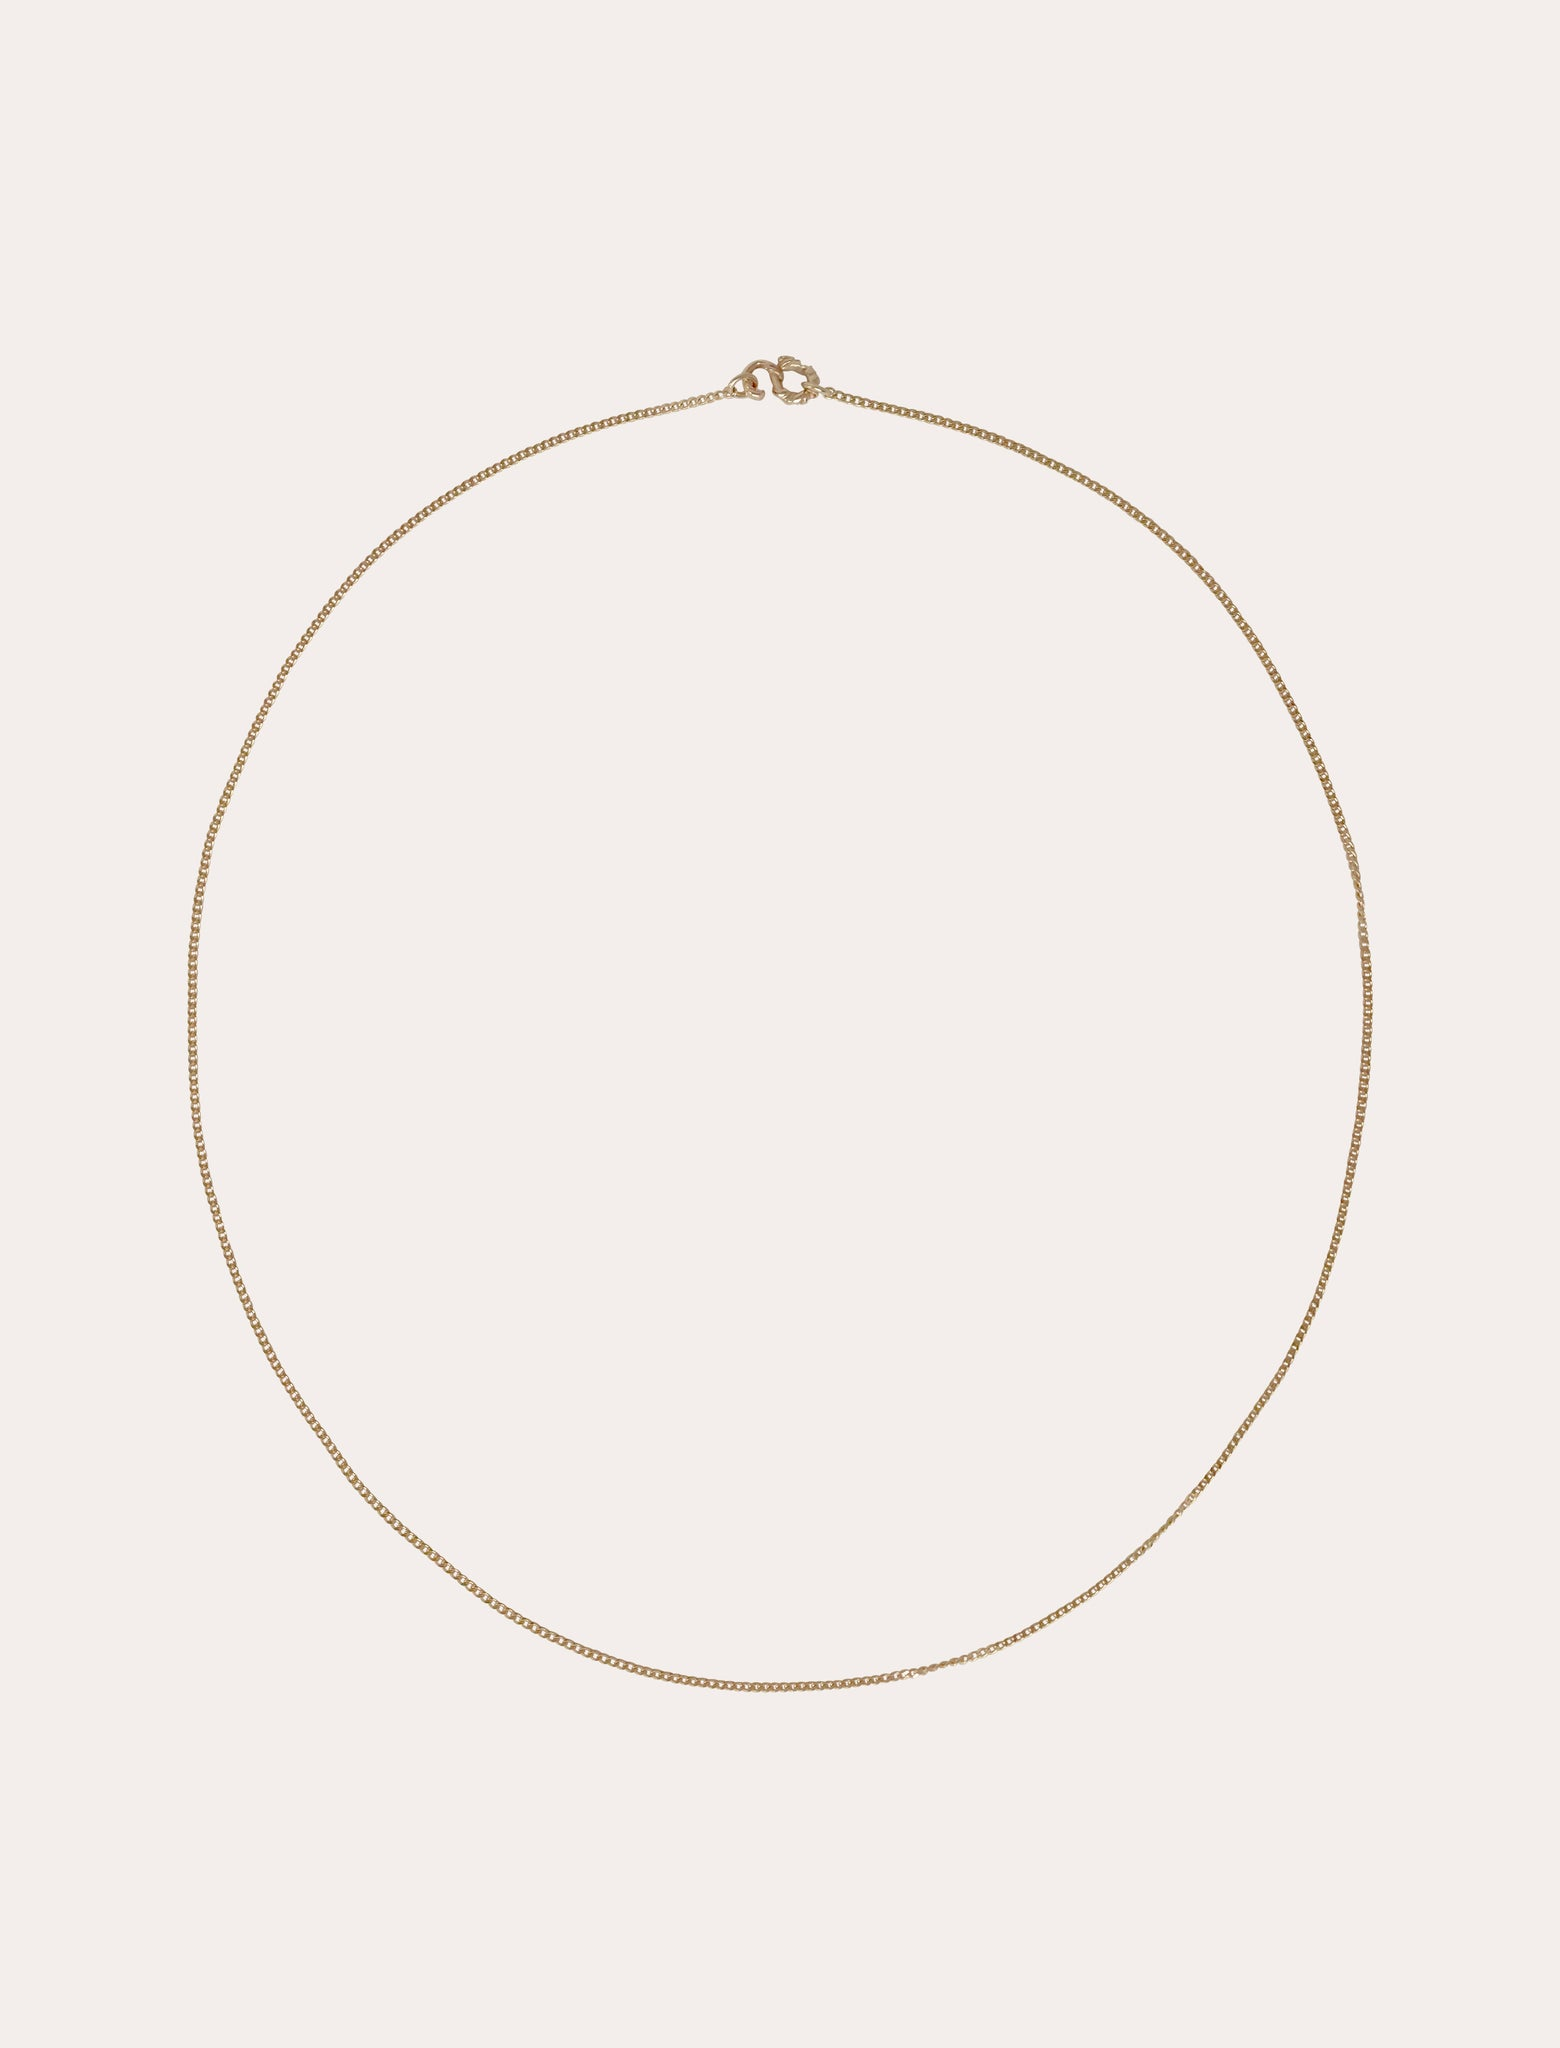 ANOTHER ASPECT x Corali, Kubi Necklace 14k Yellow Gold